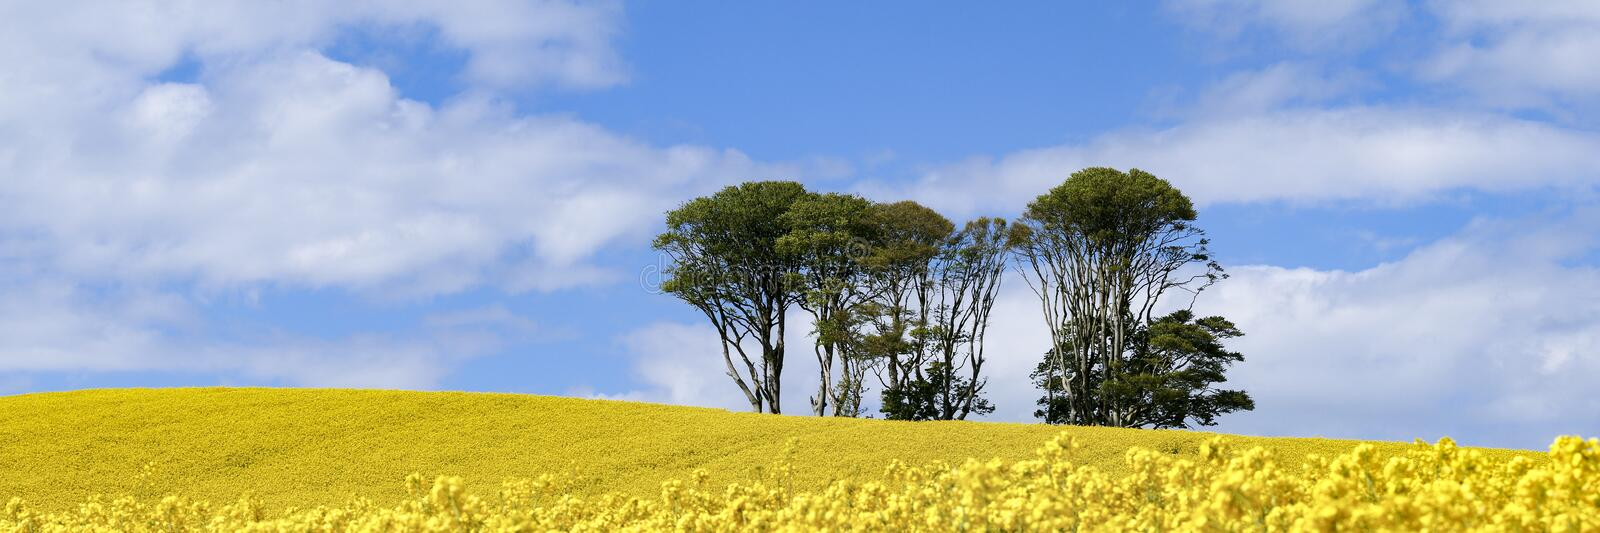 Panoramic view of small clump of trees in field of bright yellow flowers of Rapeseed Brassica napus royalty free stock image